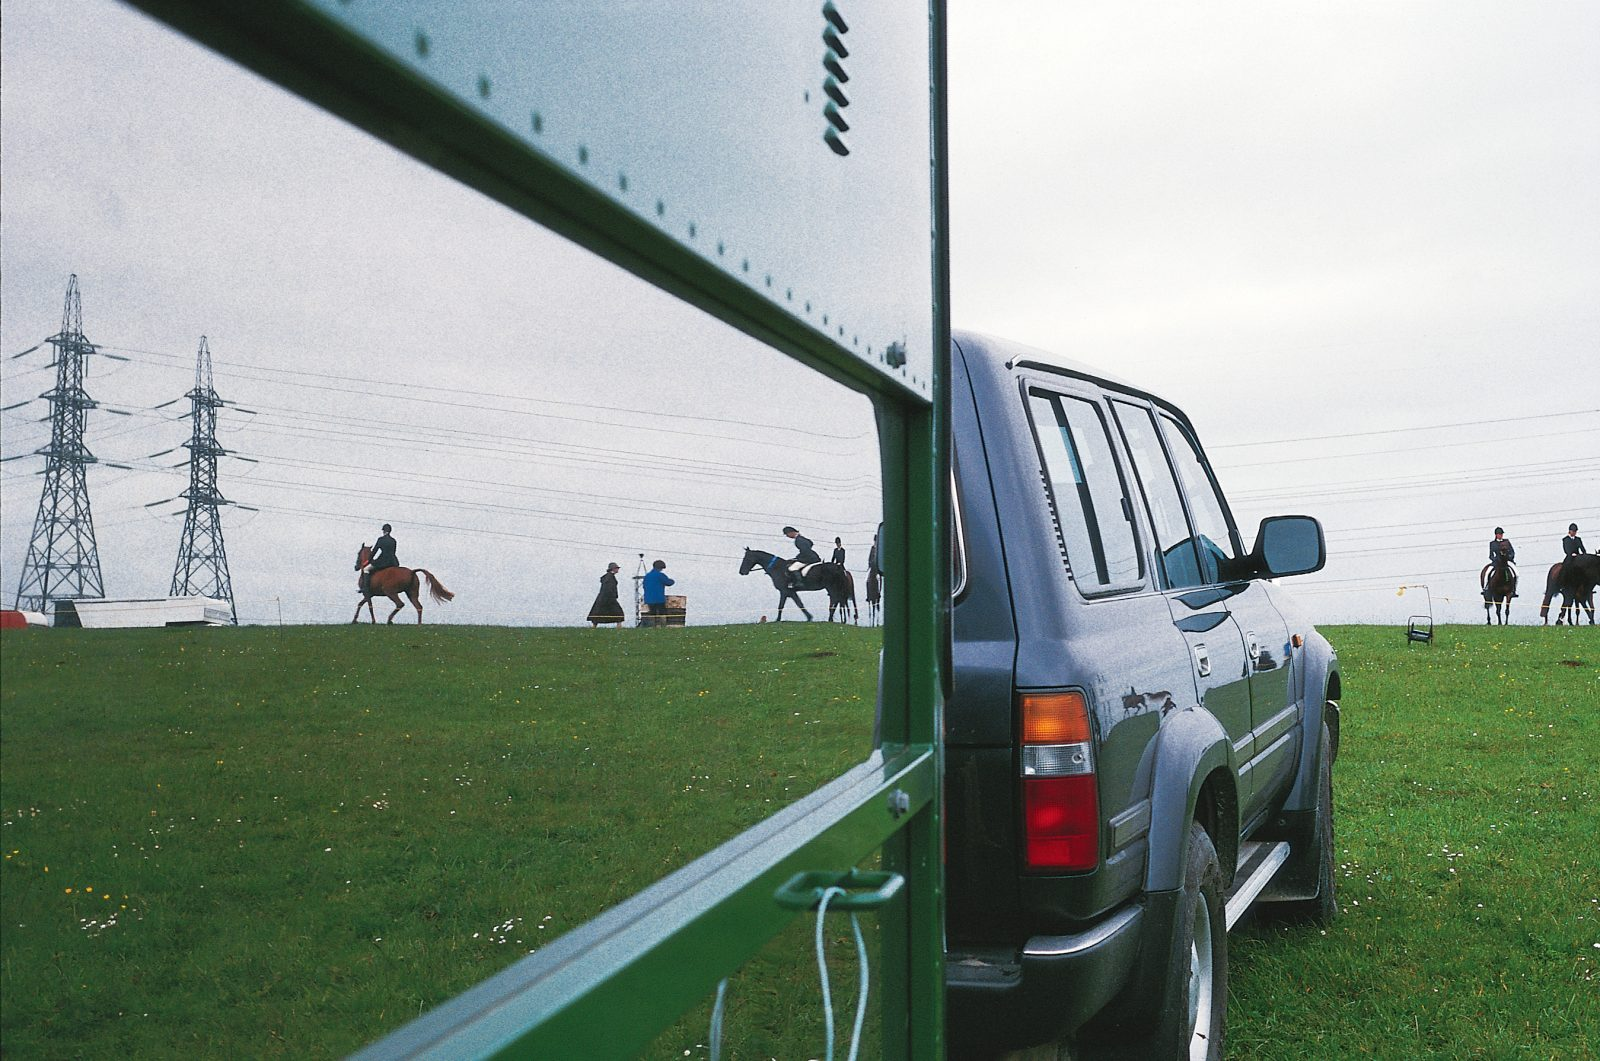 The last riders leave the ground on the final ribbon day held at the Albany Pony Club's Bass Road grounds, October 1996, before the machines move in. Like riverboats, kauri trees, gumdiggers and orchards, horses are a reflection of a rural Albany now past, as the area looks forward to a new incarnation as a focus of Auckland's growth.